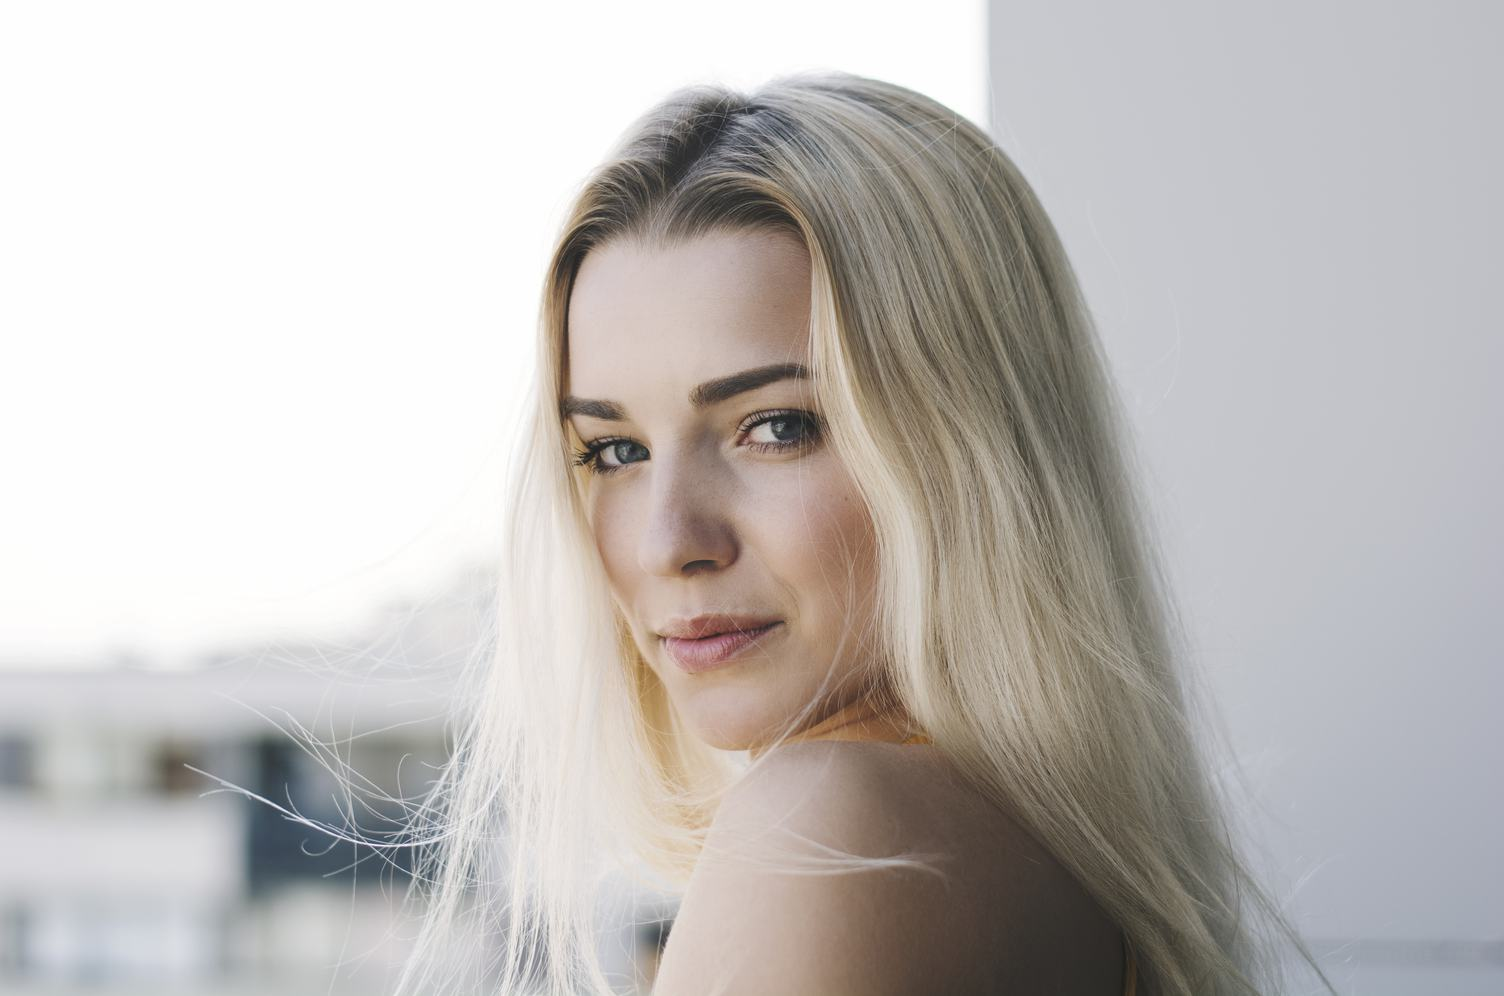 Portrait of a Blonde with Straight Hair